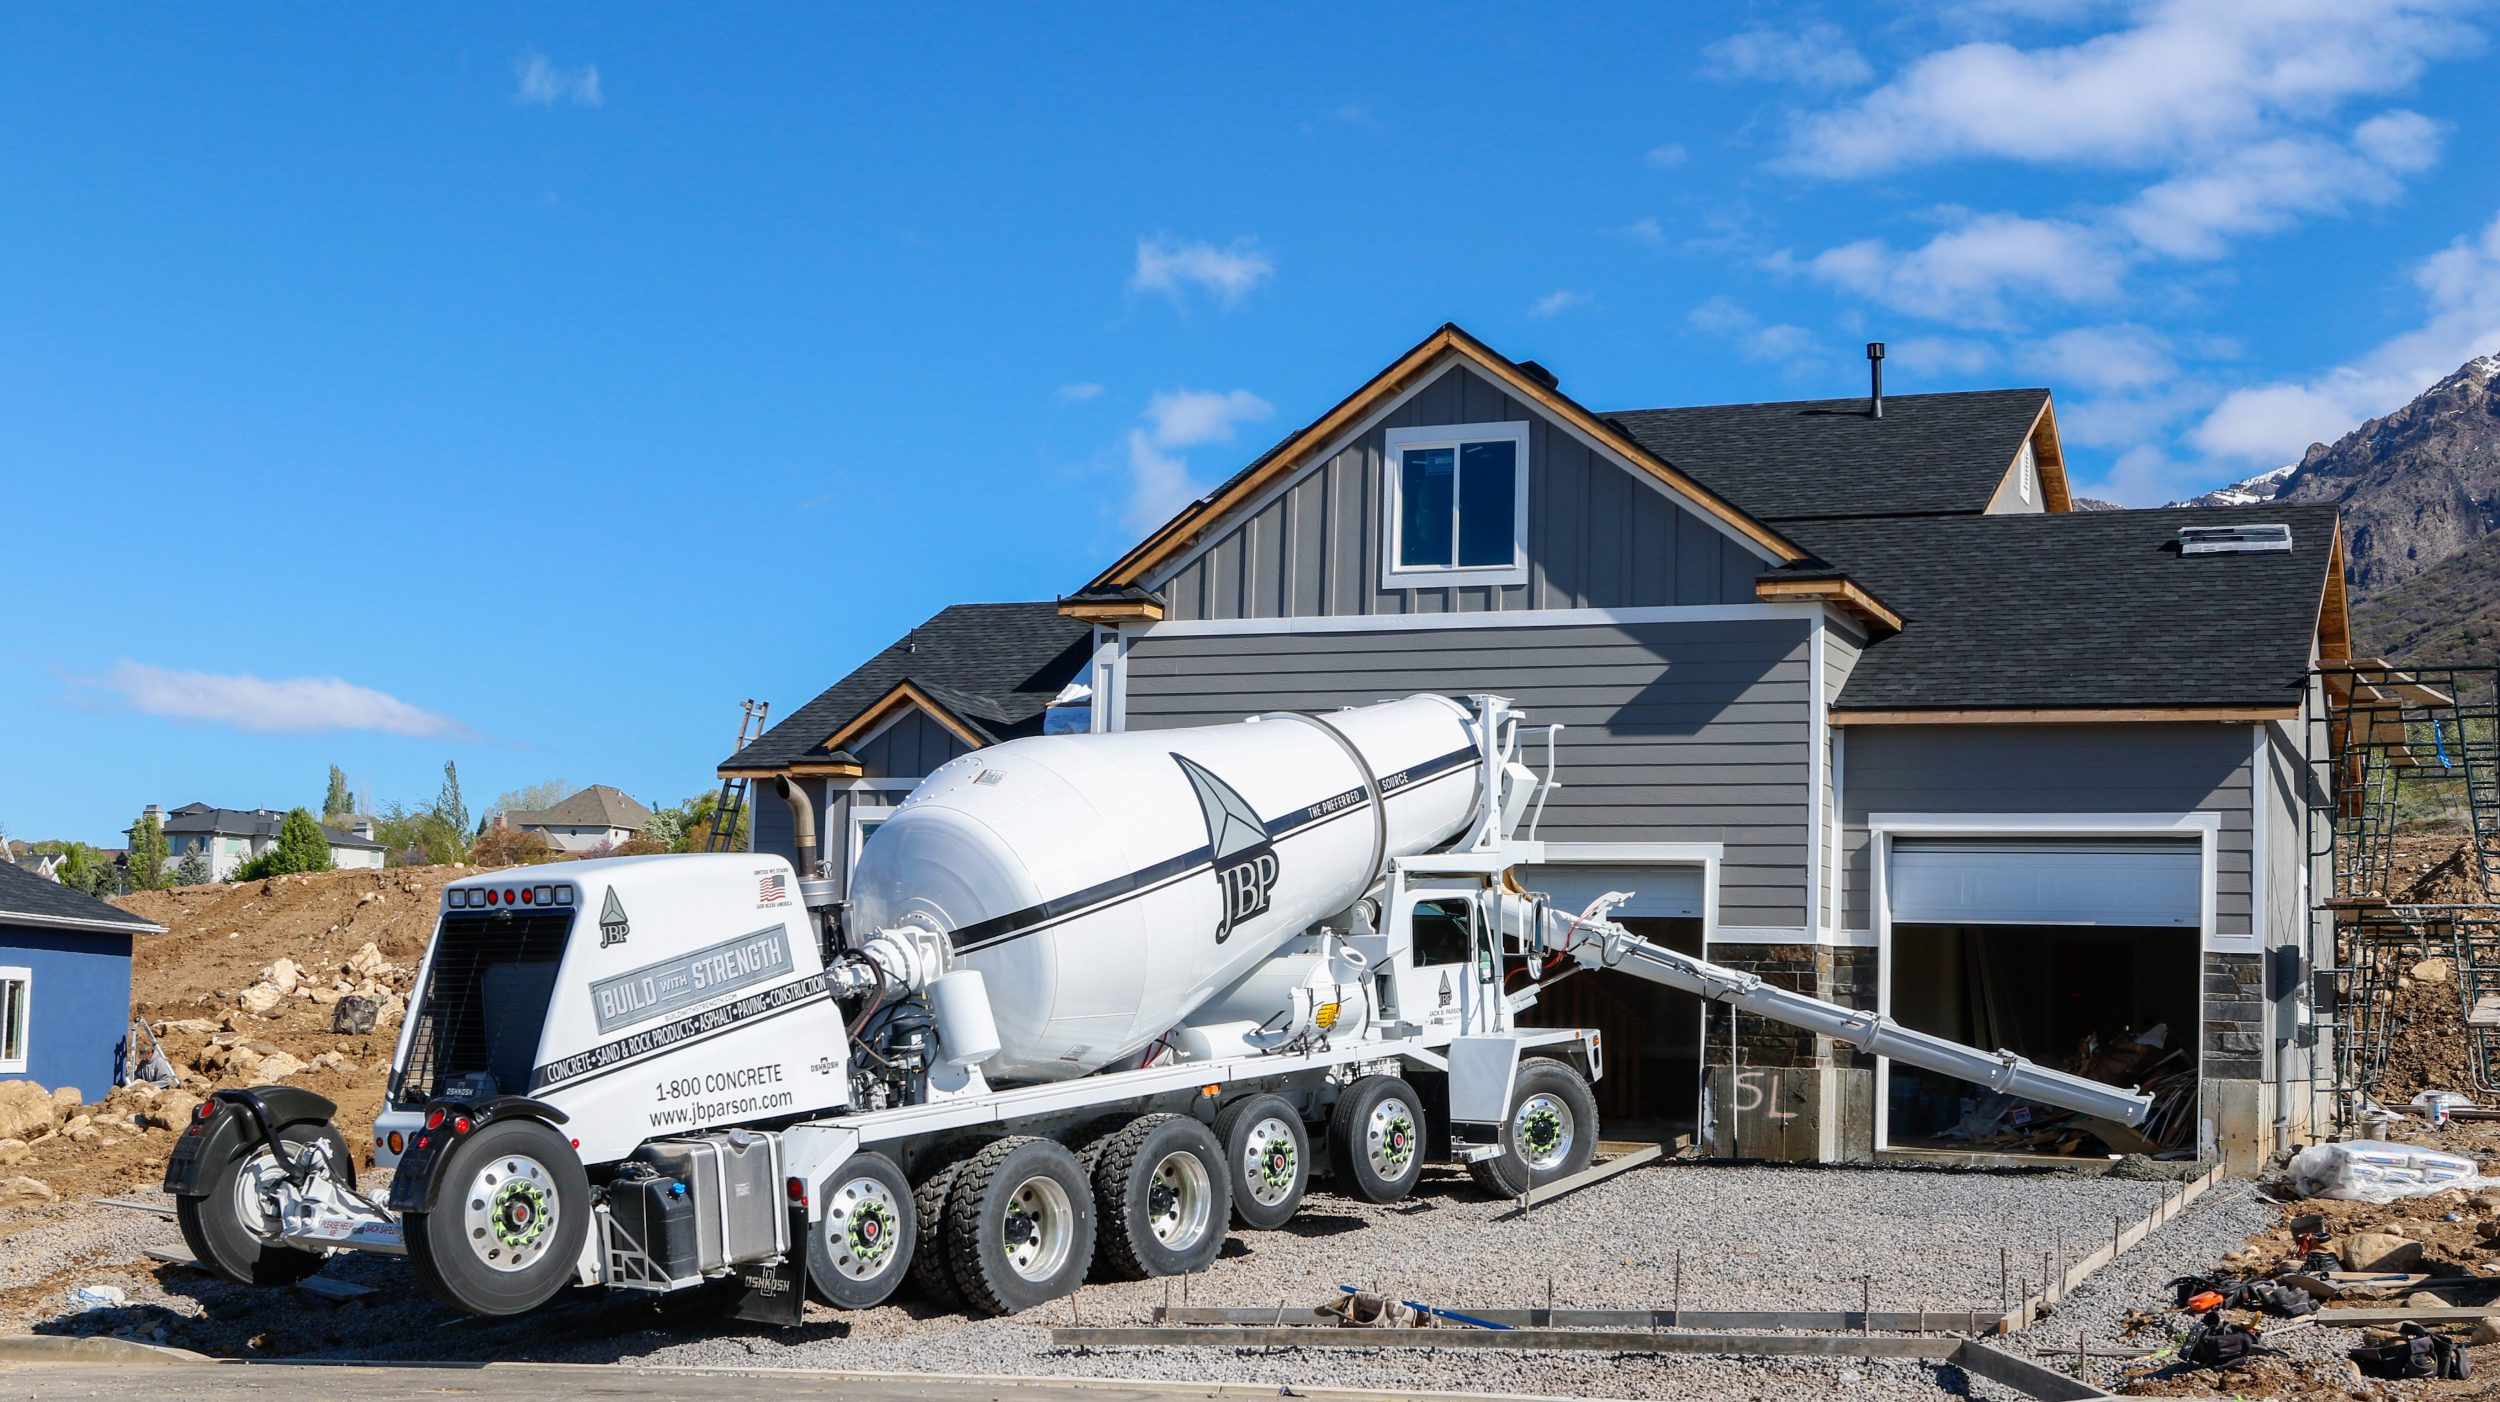 Image of a Staker Parson concrete truck getting ready to dispense concrete for a new driveway at a new home in North Ogden, UT